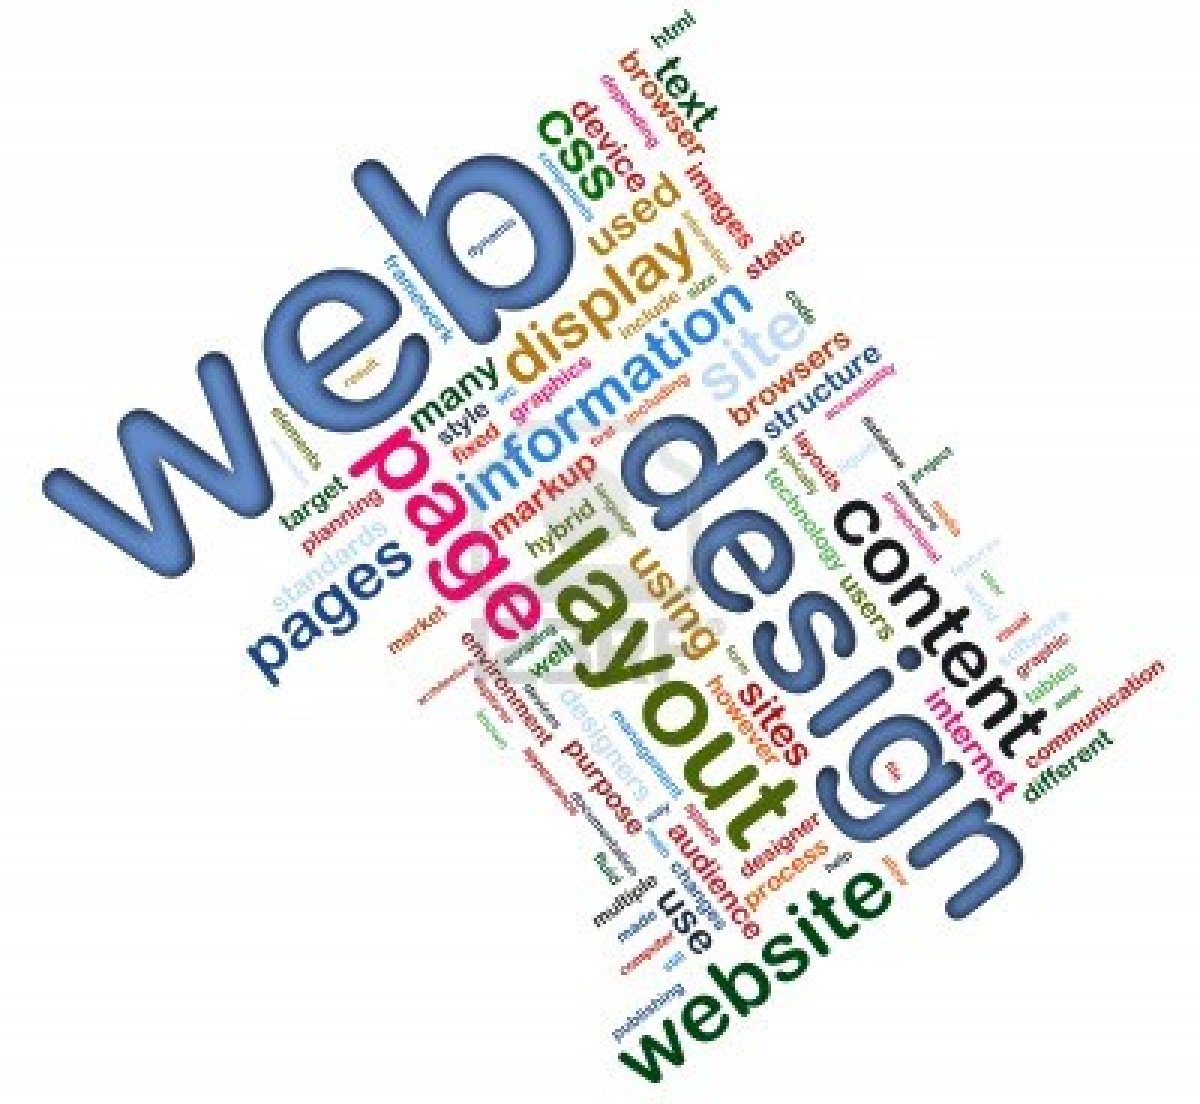 Website Design Birmingham: Types and Styles Effective For ...